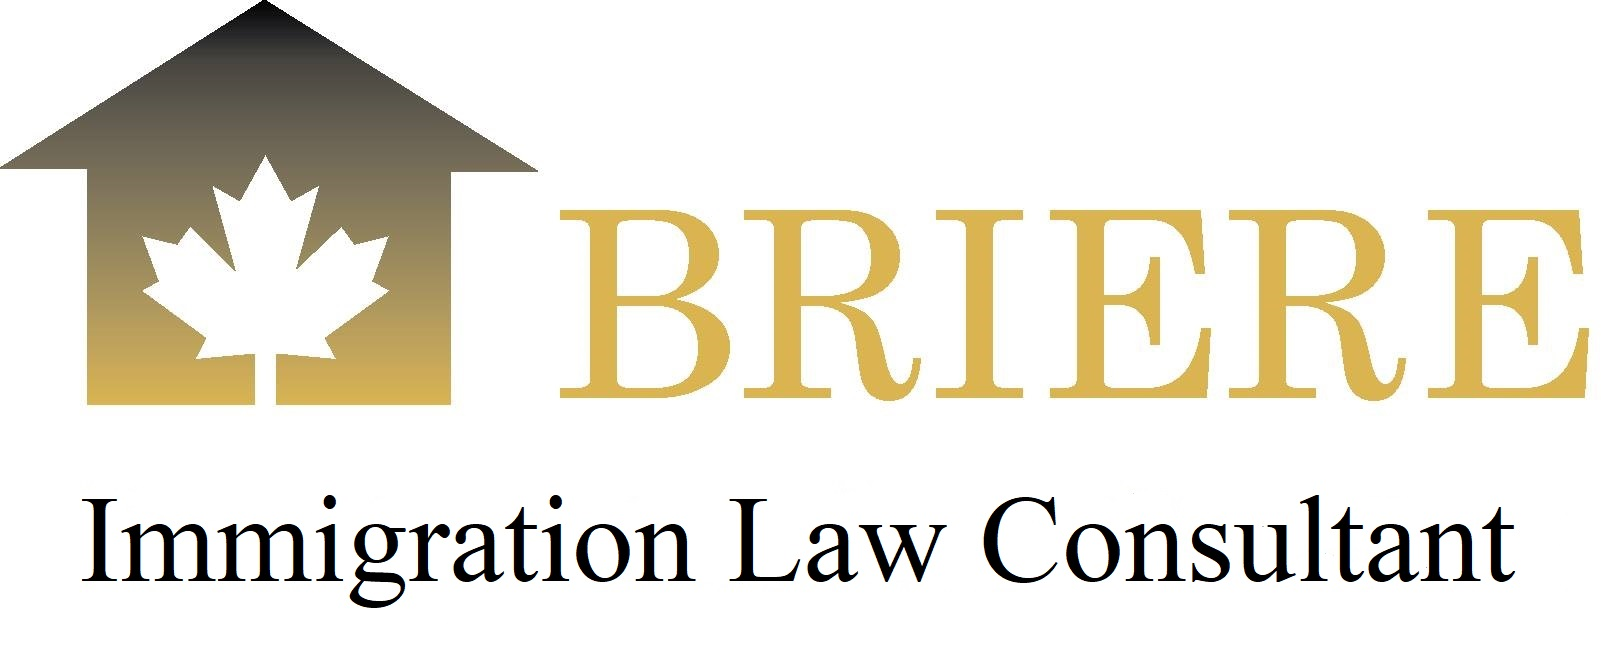 Briere Immigration Services Ltd. Logo